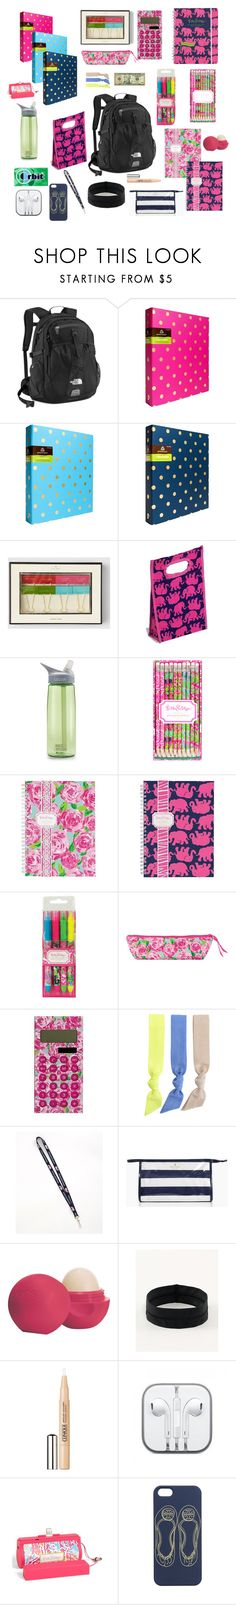 """What's in my school backpack"" by preppyprep101 ❤ liked on Polyvore featuring The North Face, Kate Spade, Lilly Pulitzer, CamelBak, Splendid, Vineyard Vines, Eos, lululemon, Clinique and Tory Burch"